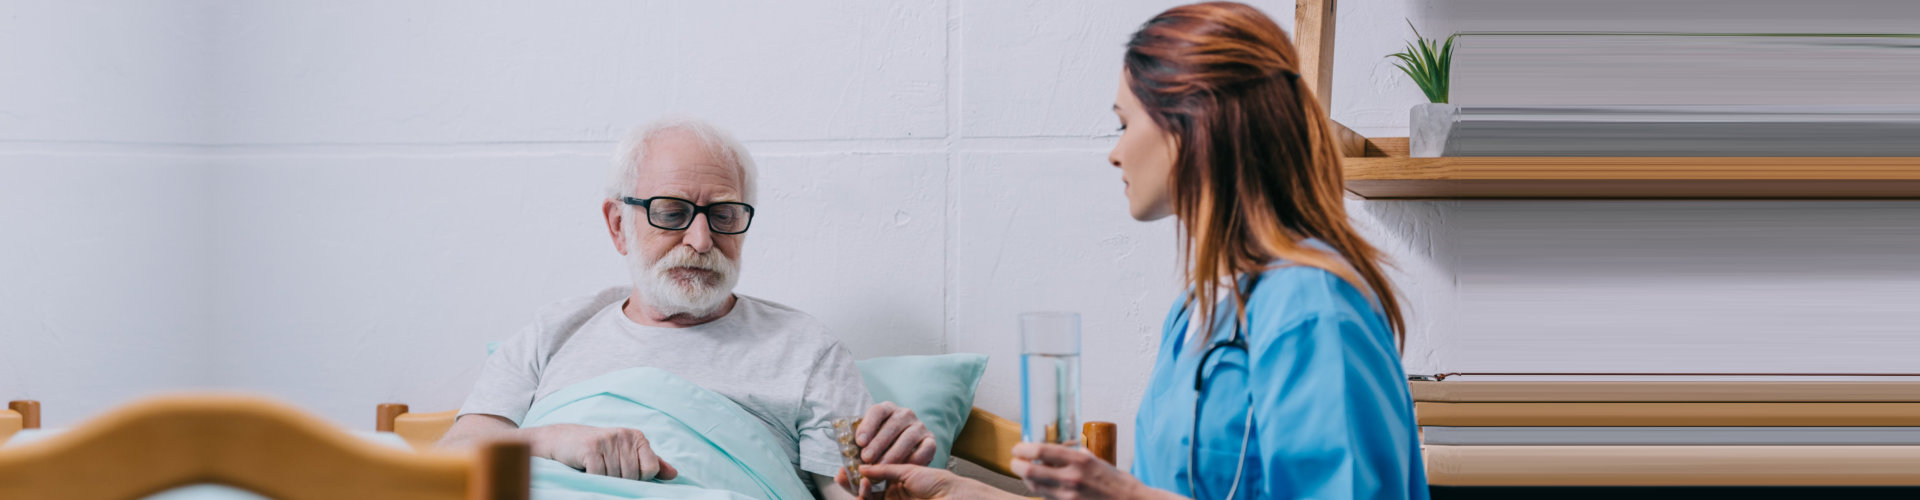 female caregiver assisting to her old man patient to drink his medicine while lying on the bed